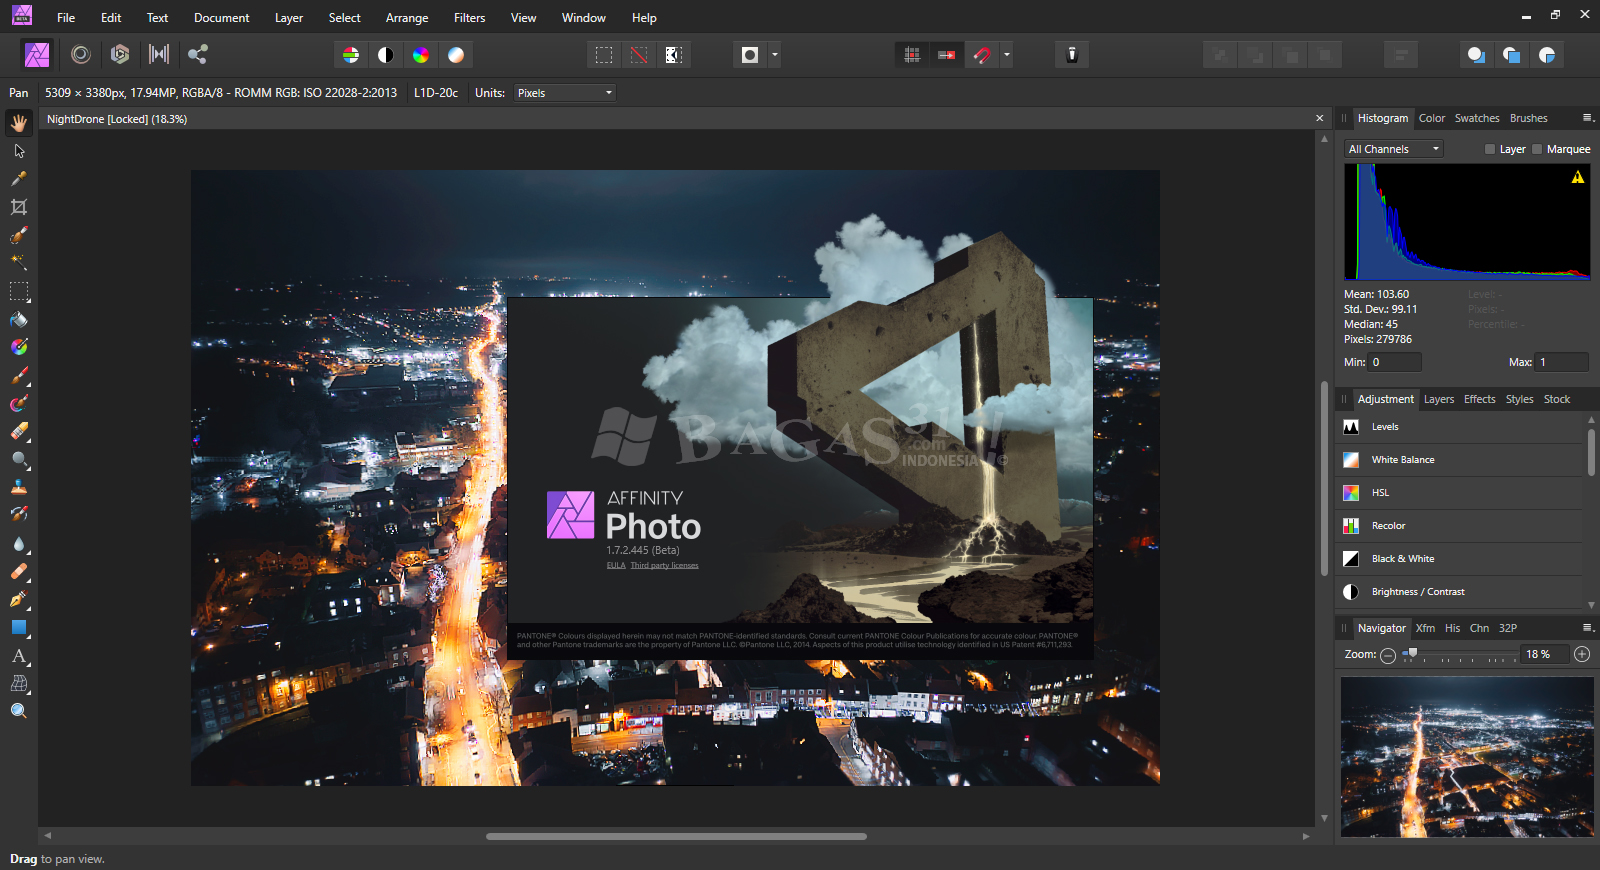 Serif Affinity Photo 1.7.2.445 (Beta) Full Version